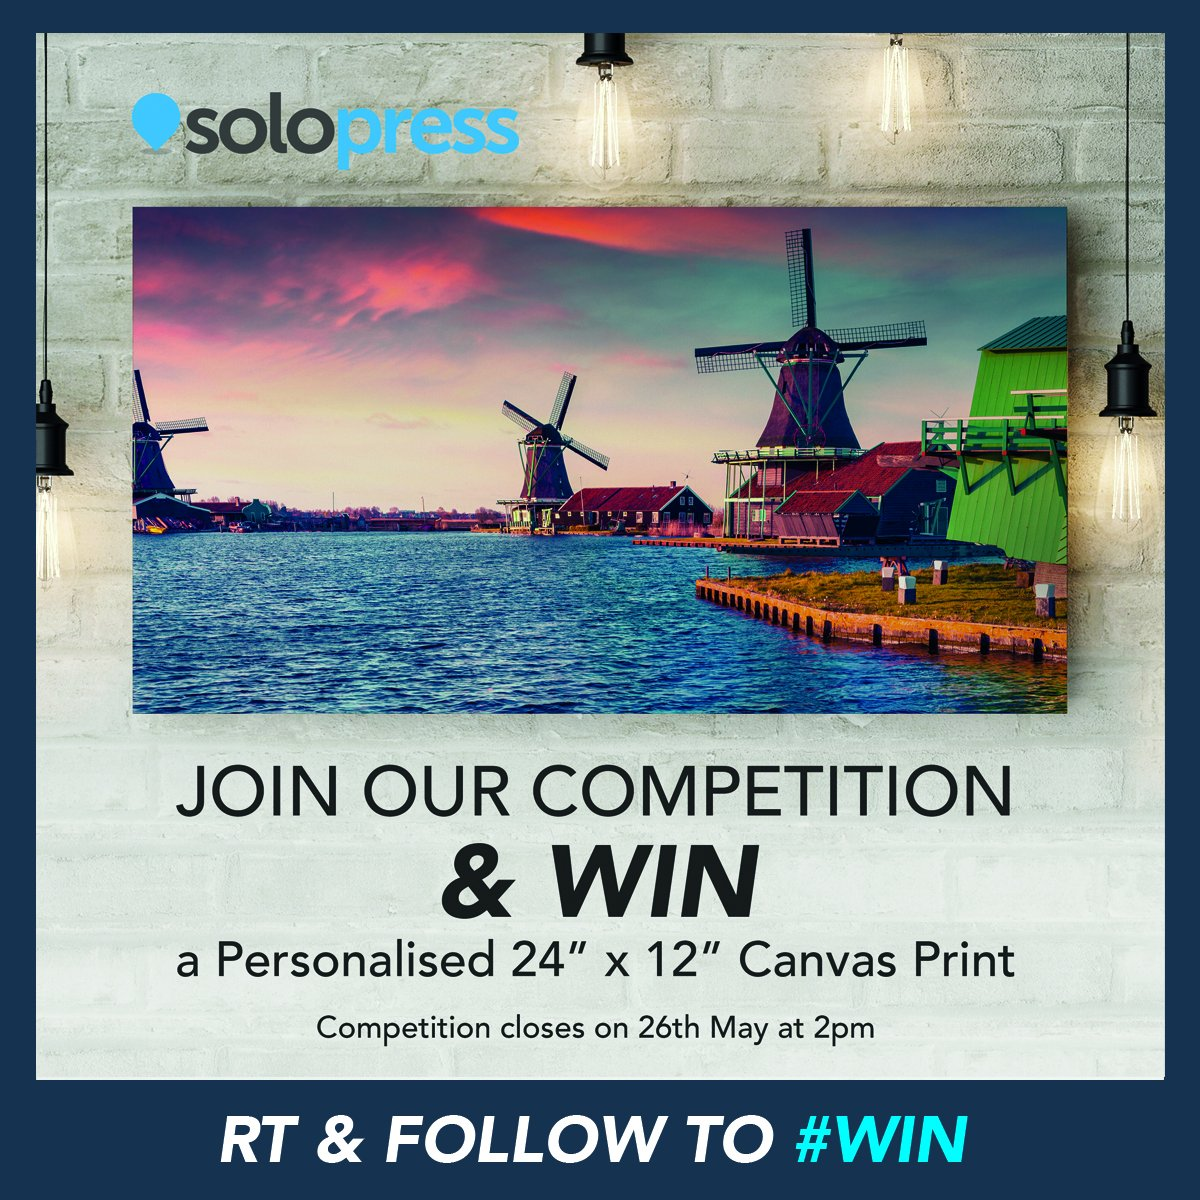 How does a free #Canvas with your own personalised design sound? #WIN our #competition now! RT &amp; FOLLOW @Solopress   #giveaway #giveaways<br>http://pic.twitter.com/Fkk3NOfbNi